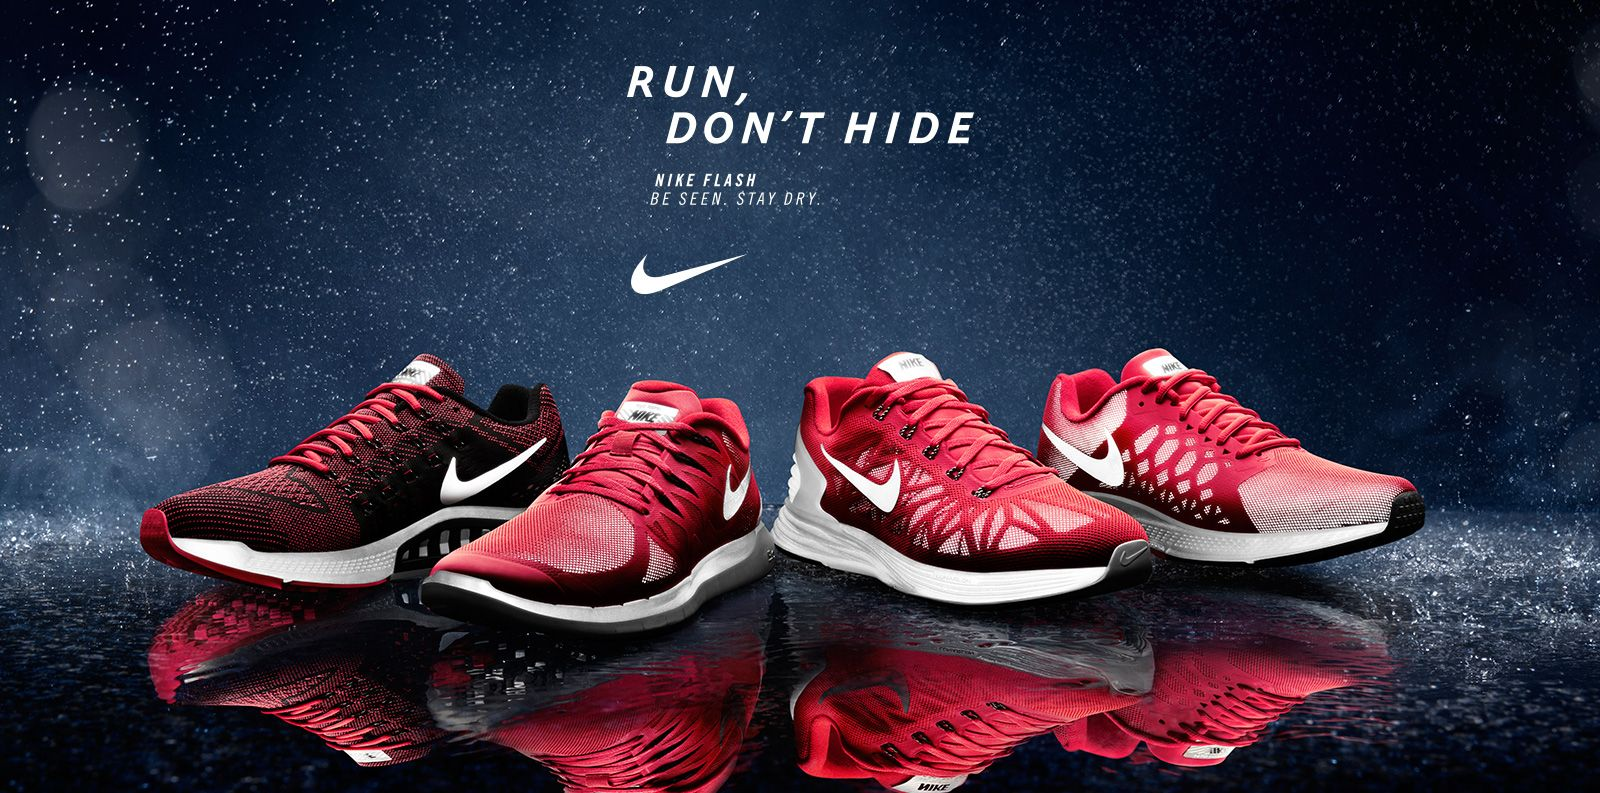 detailed look a1567 62fd6 nike banner - Google 搜尋